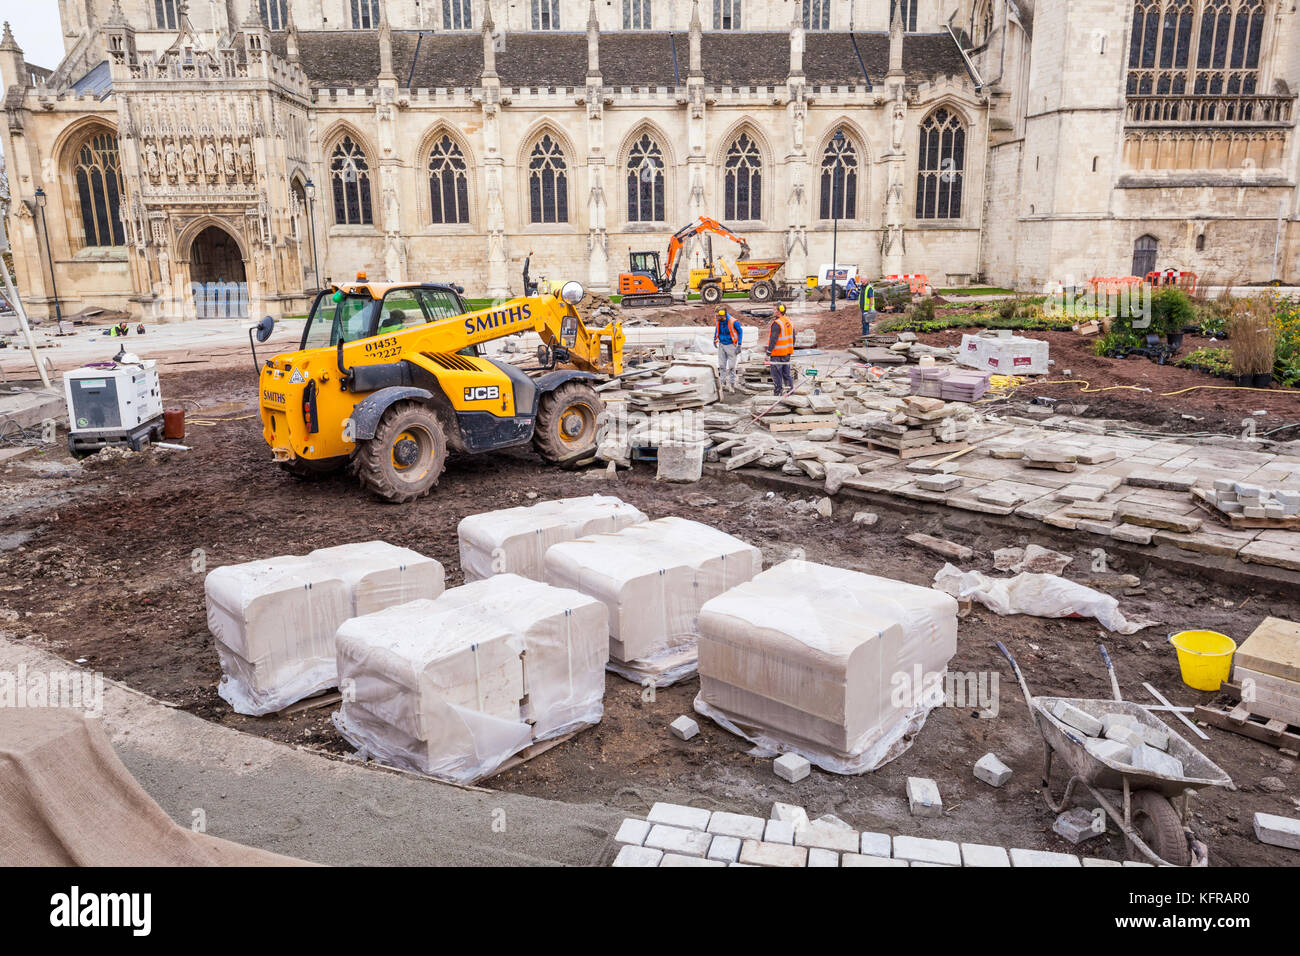 Major landscaping work in progress at Gloucester Cathedral UK - Stock Image